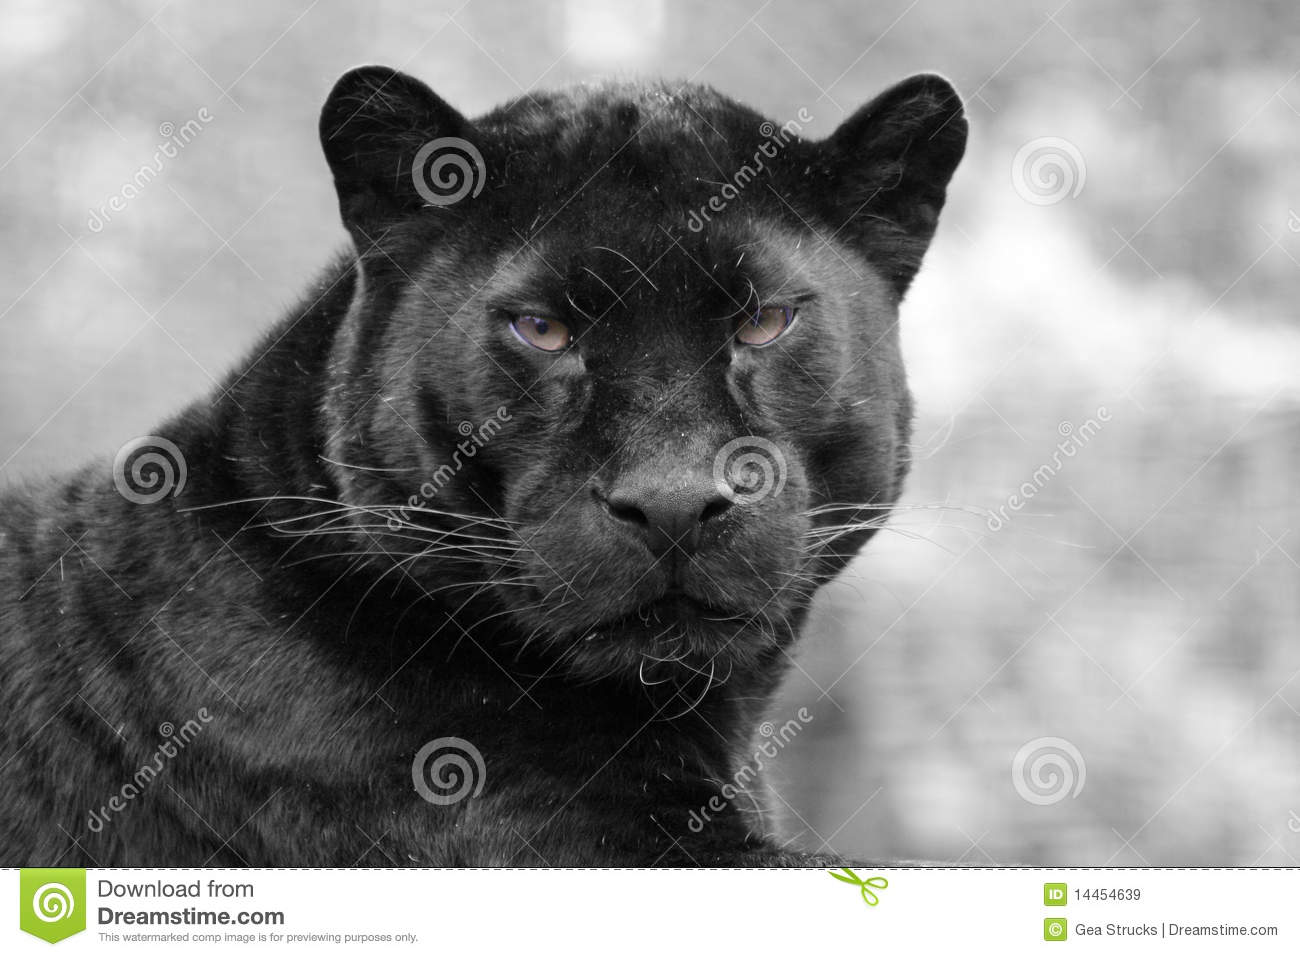 Download Black panther stock image. Image of wilderness, outdoors - 14454639